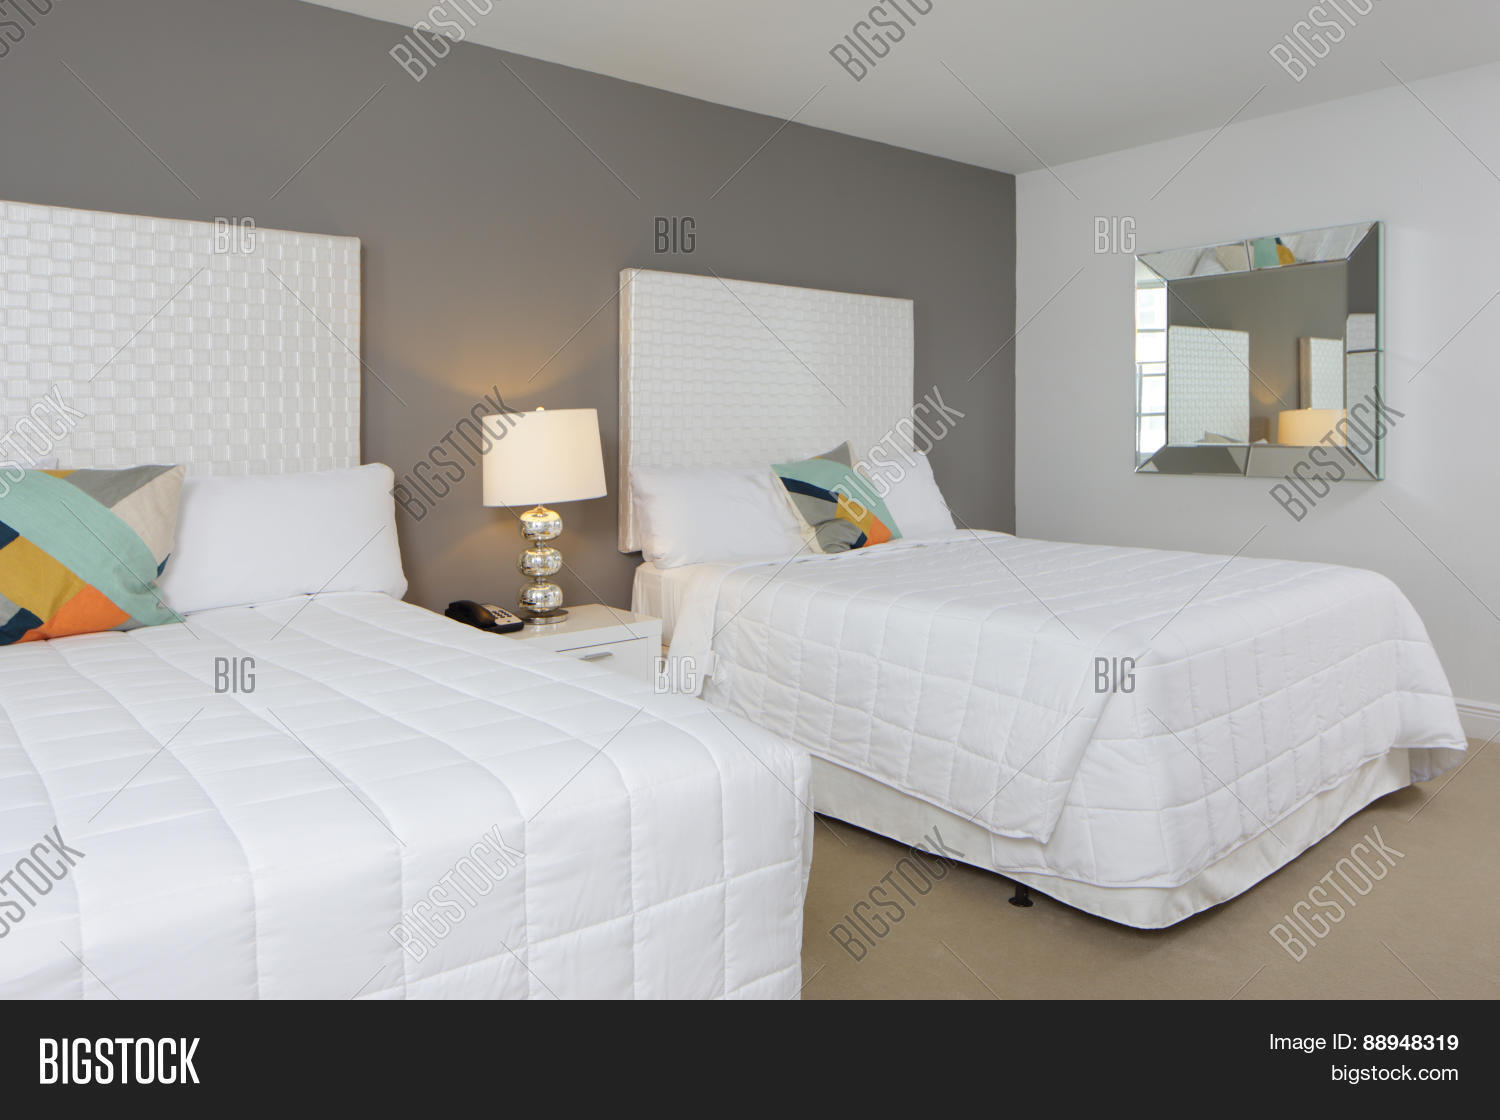 Modern Bedroom Two Image Photo Free Trial Bigstock